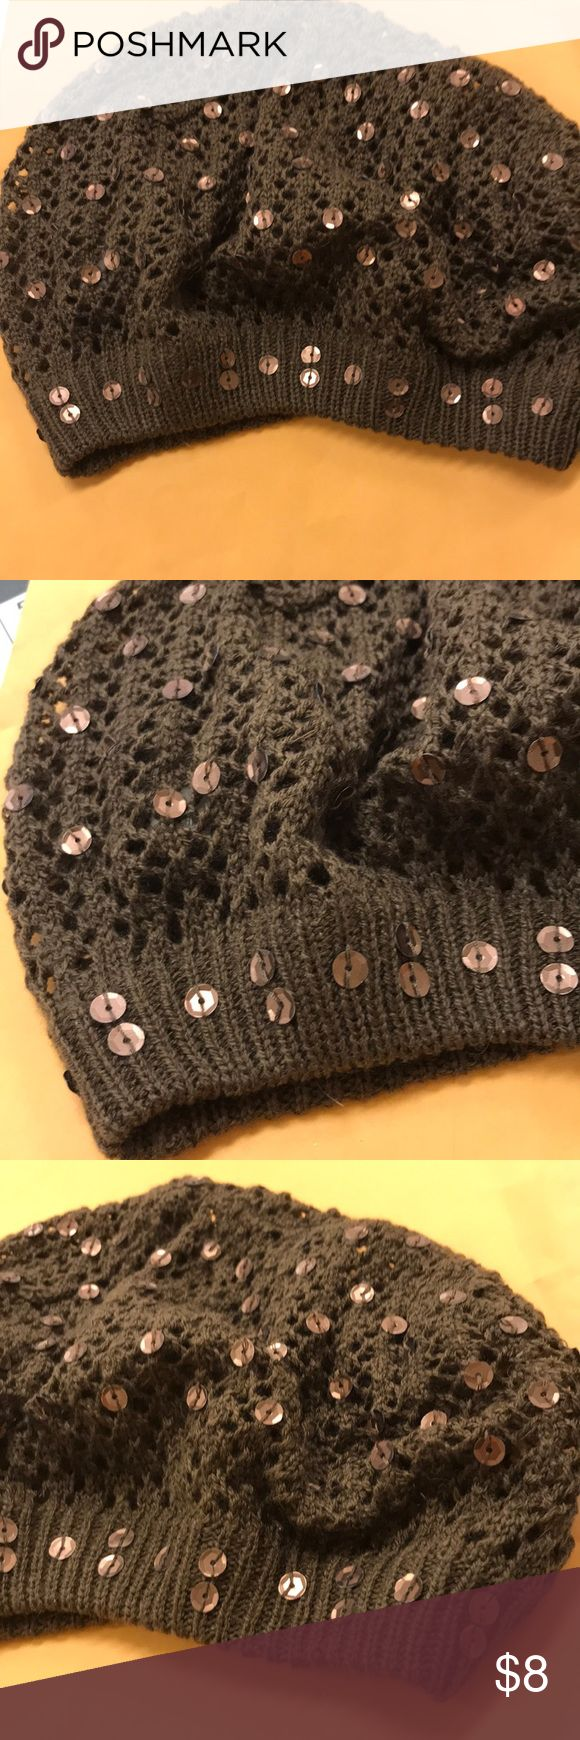 NWOT Crocheted Beanie Dark Brown Sequins New without tags. Loosely crocheted dark brown beanie with brown sequins. Dresses up any outfit! Accessories Hats